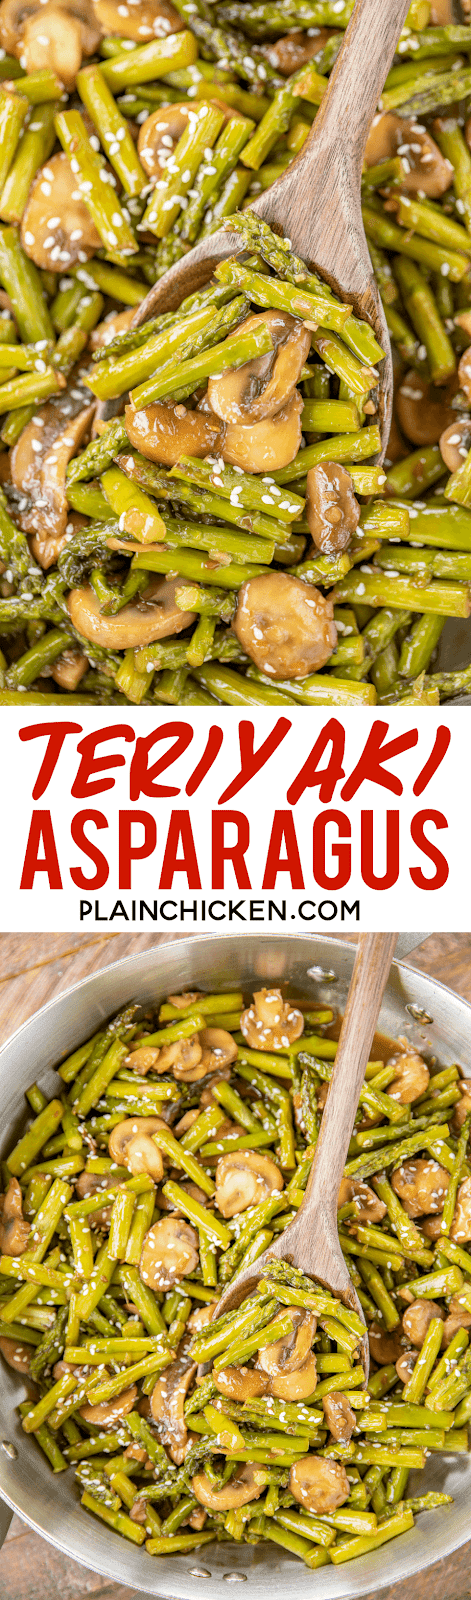 asparagus and mushrooms in a skillet